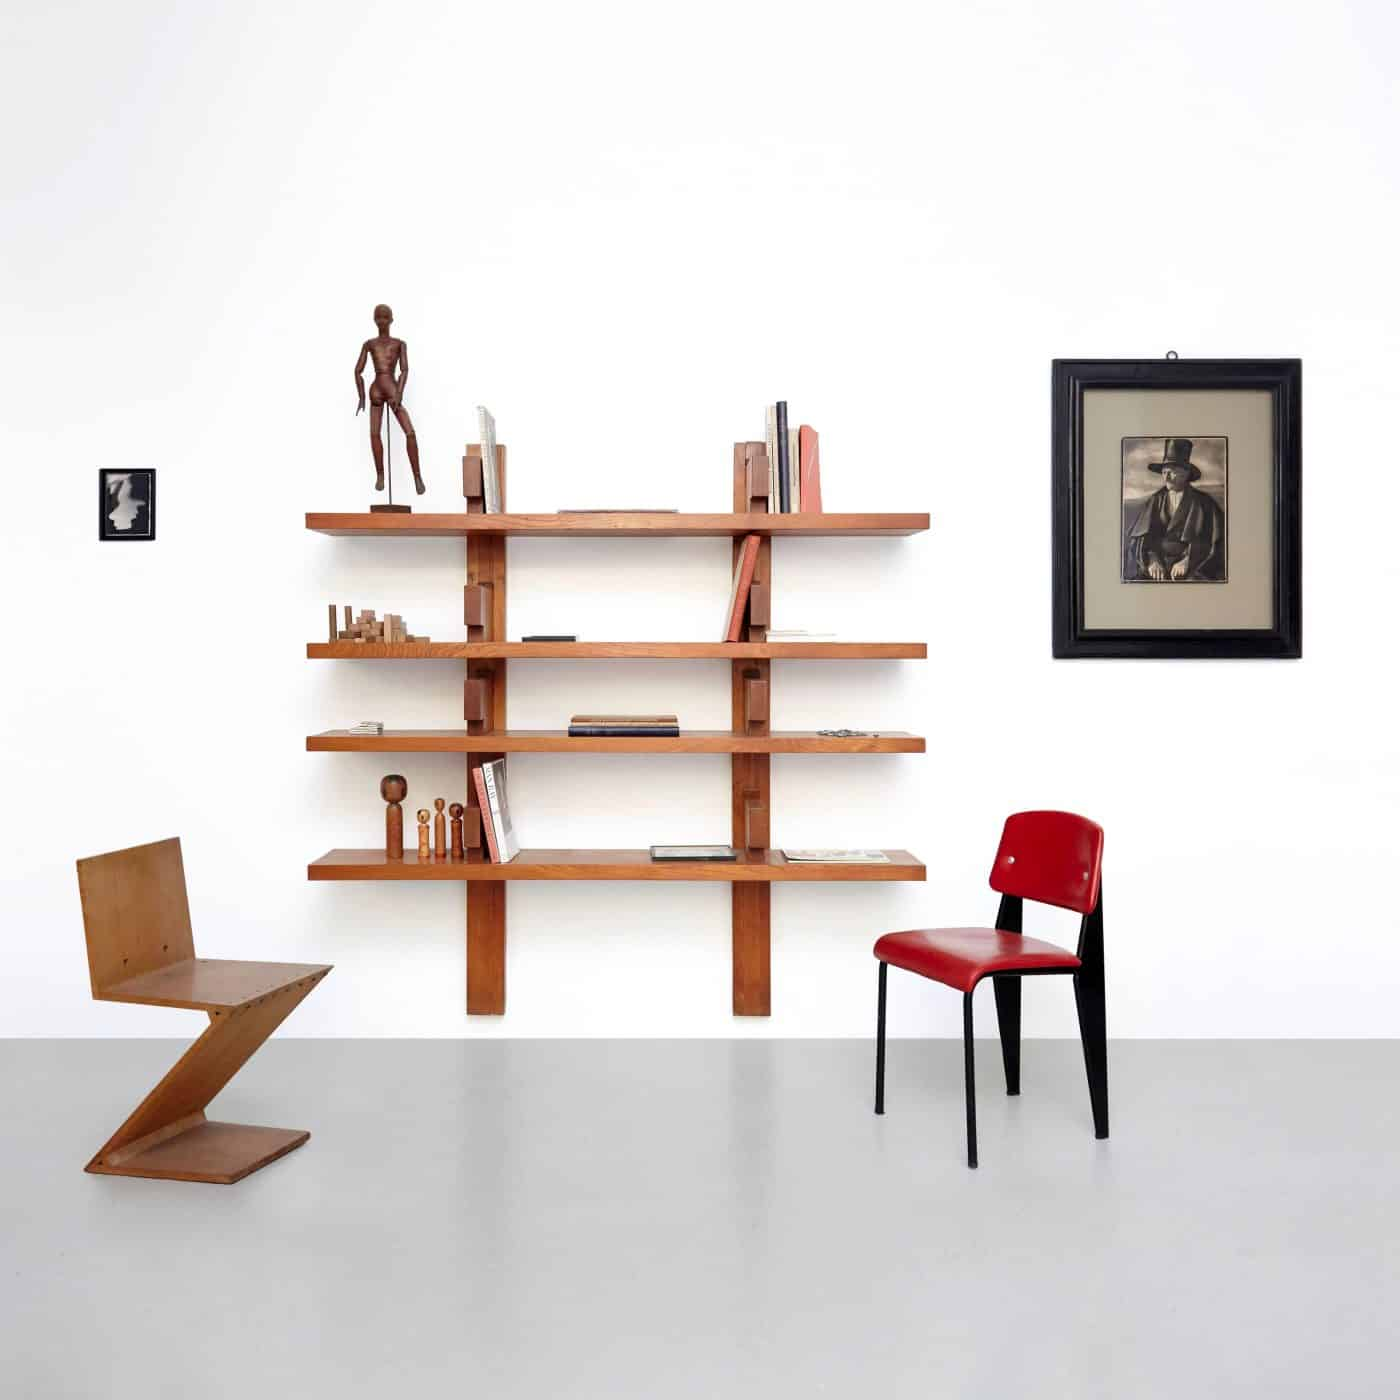 A vignette featuring PIERRE CHAPO BOOK SHELVES offered by DADA Studios